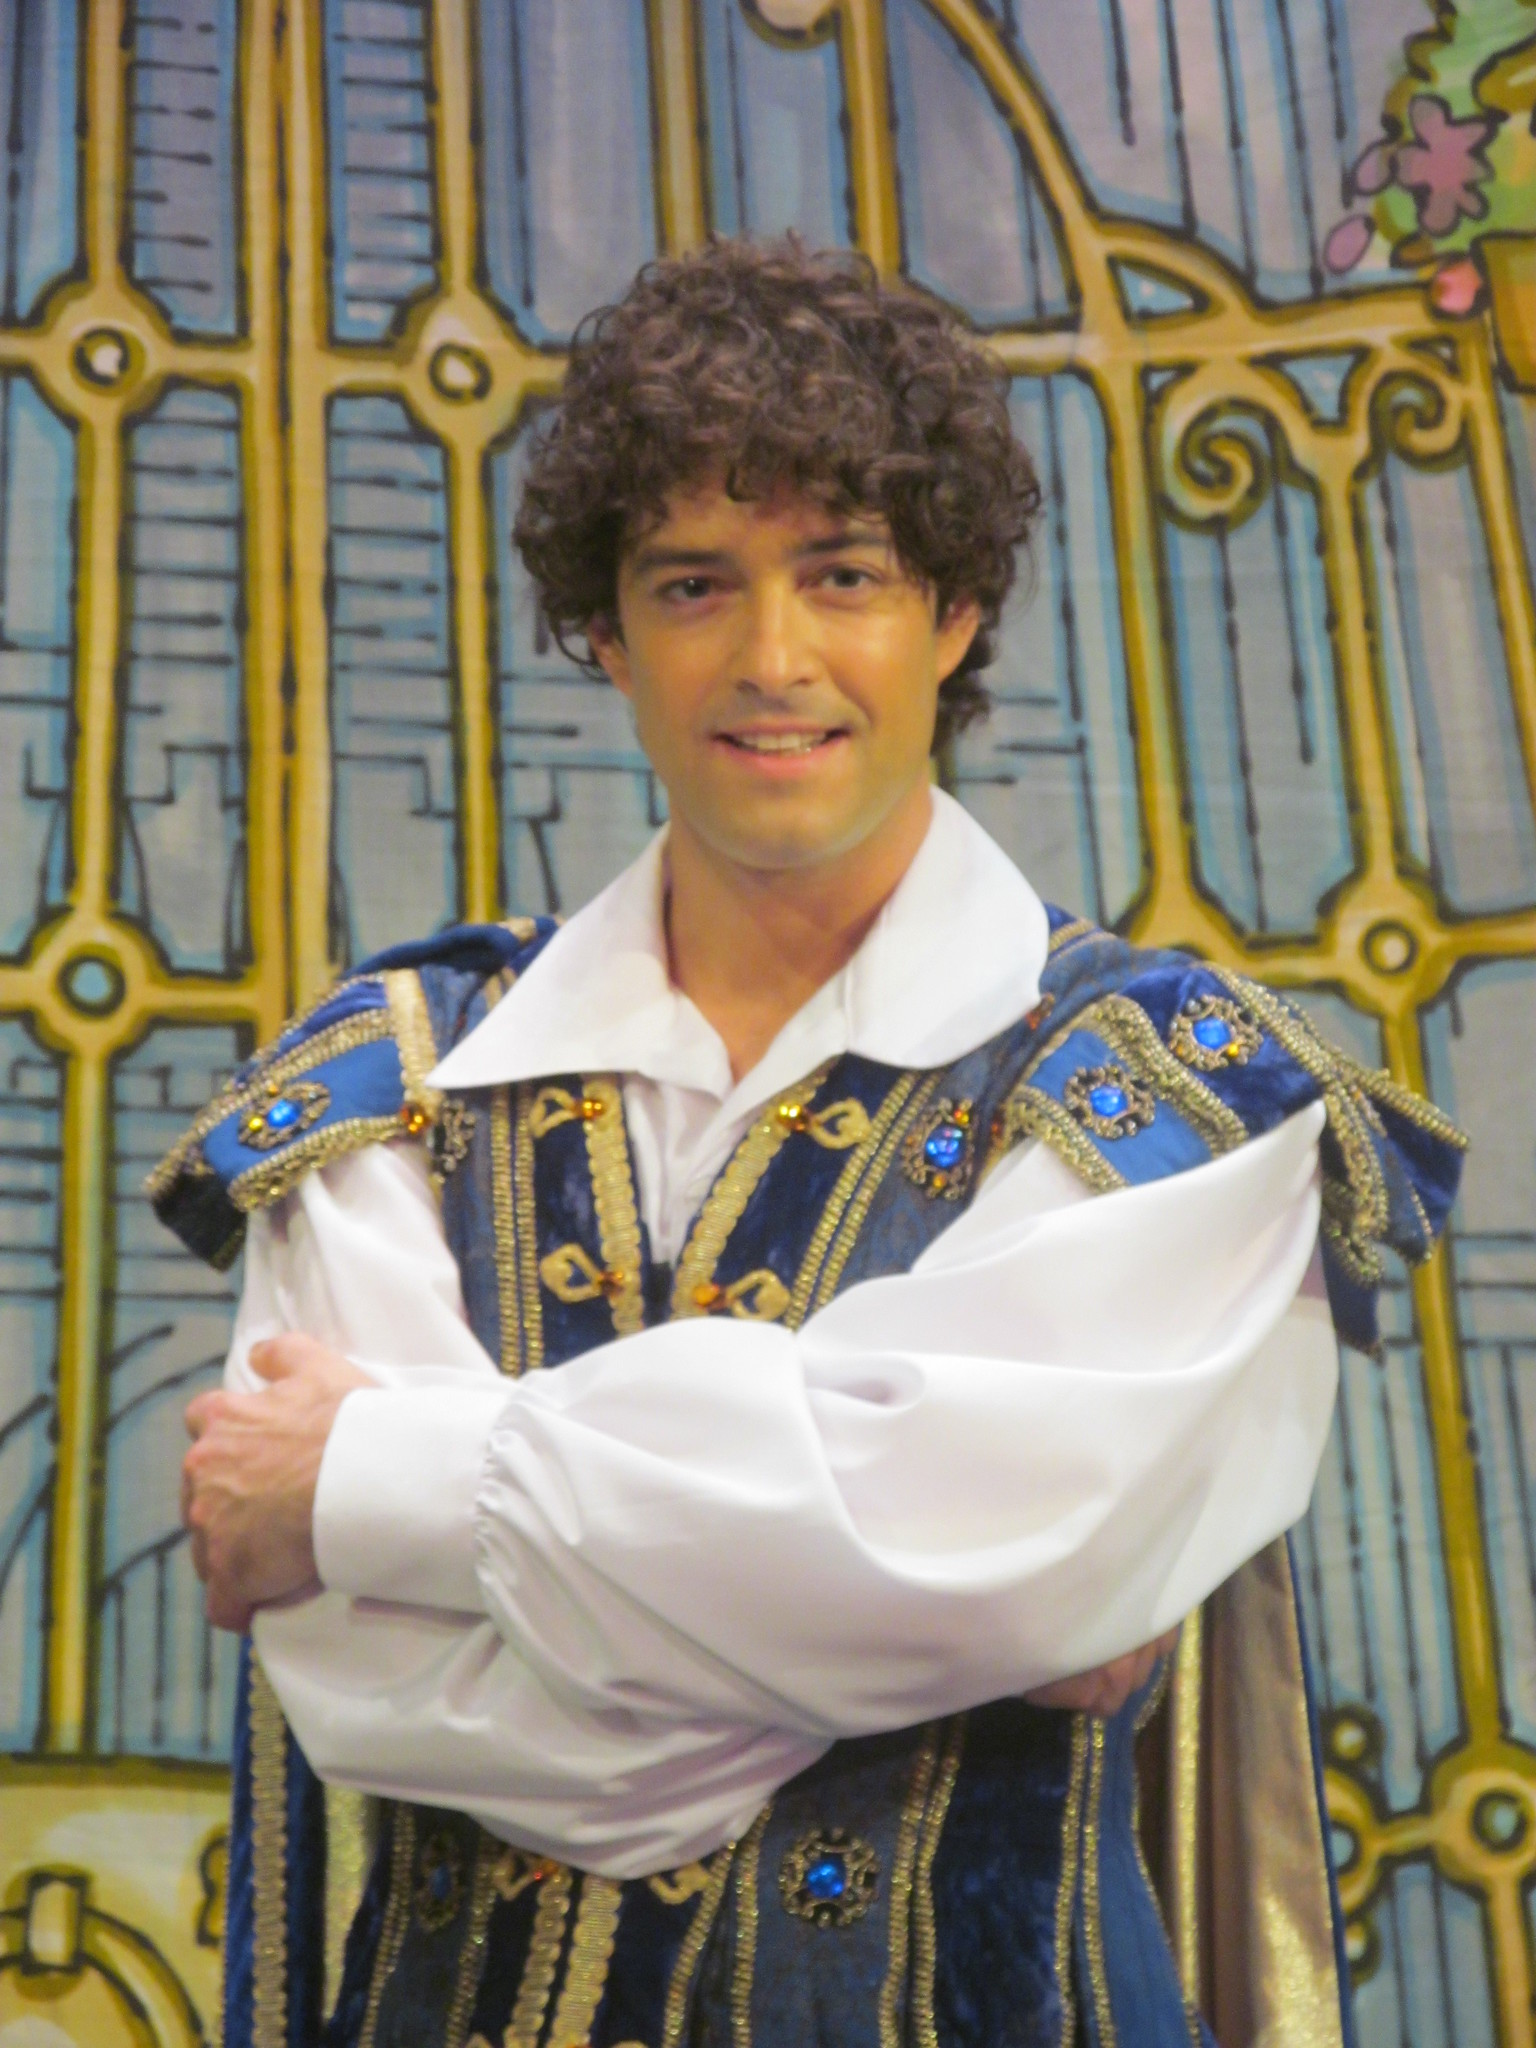 Lee Mead will play Prince Charming at Cardiff New Theatre's Christmas 2014 pantomime, Cinderella. Photo: Andy Howells